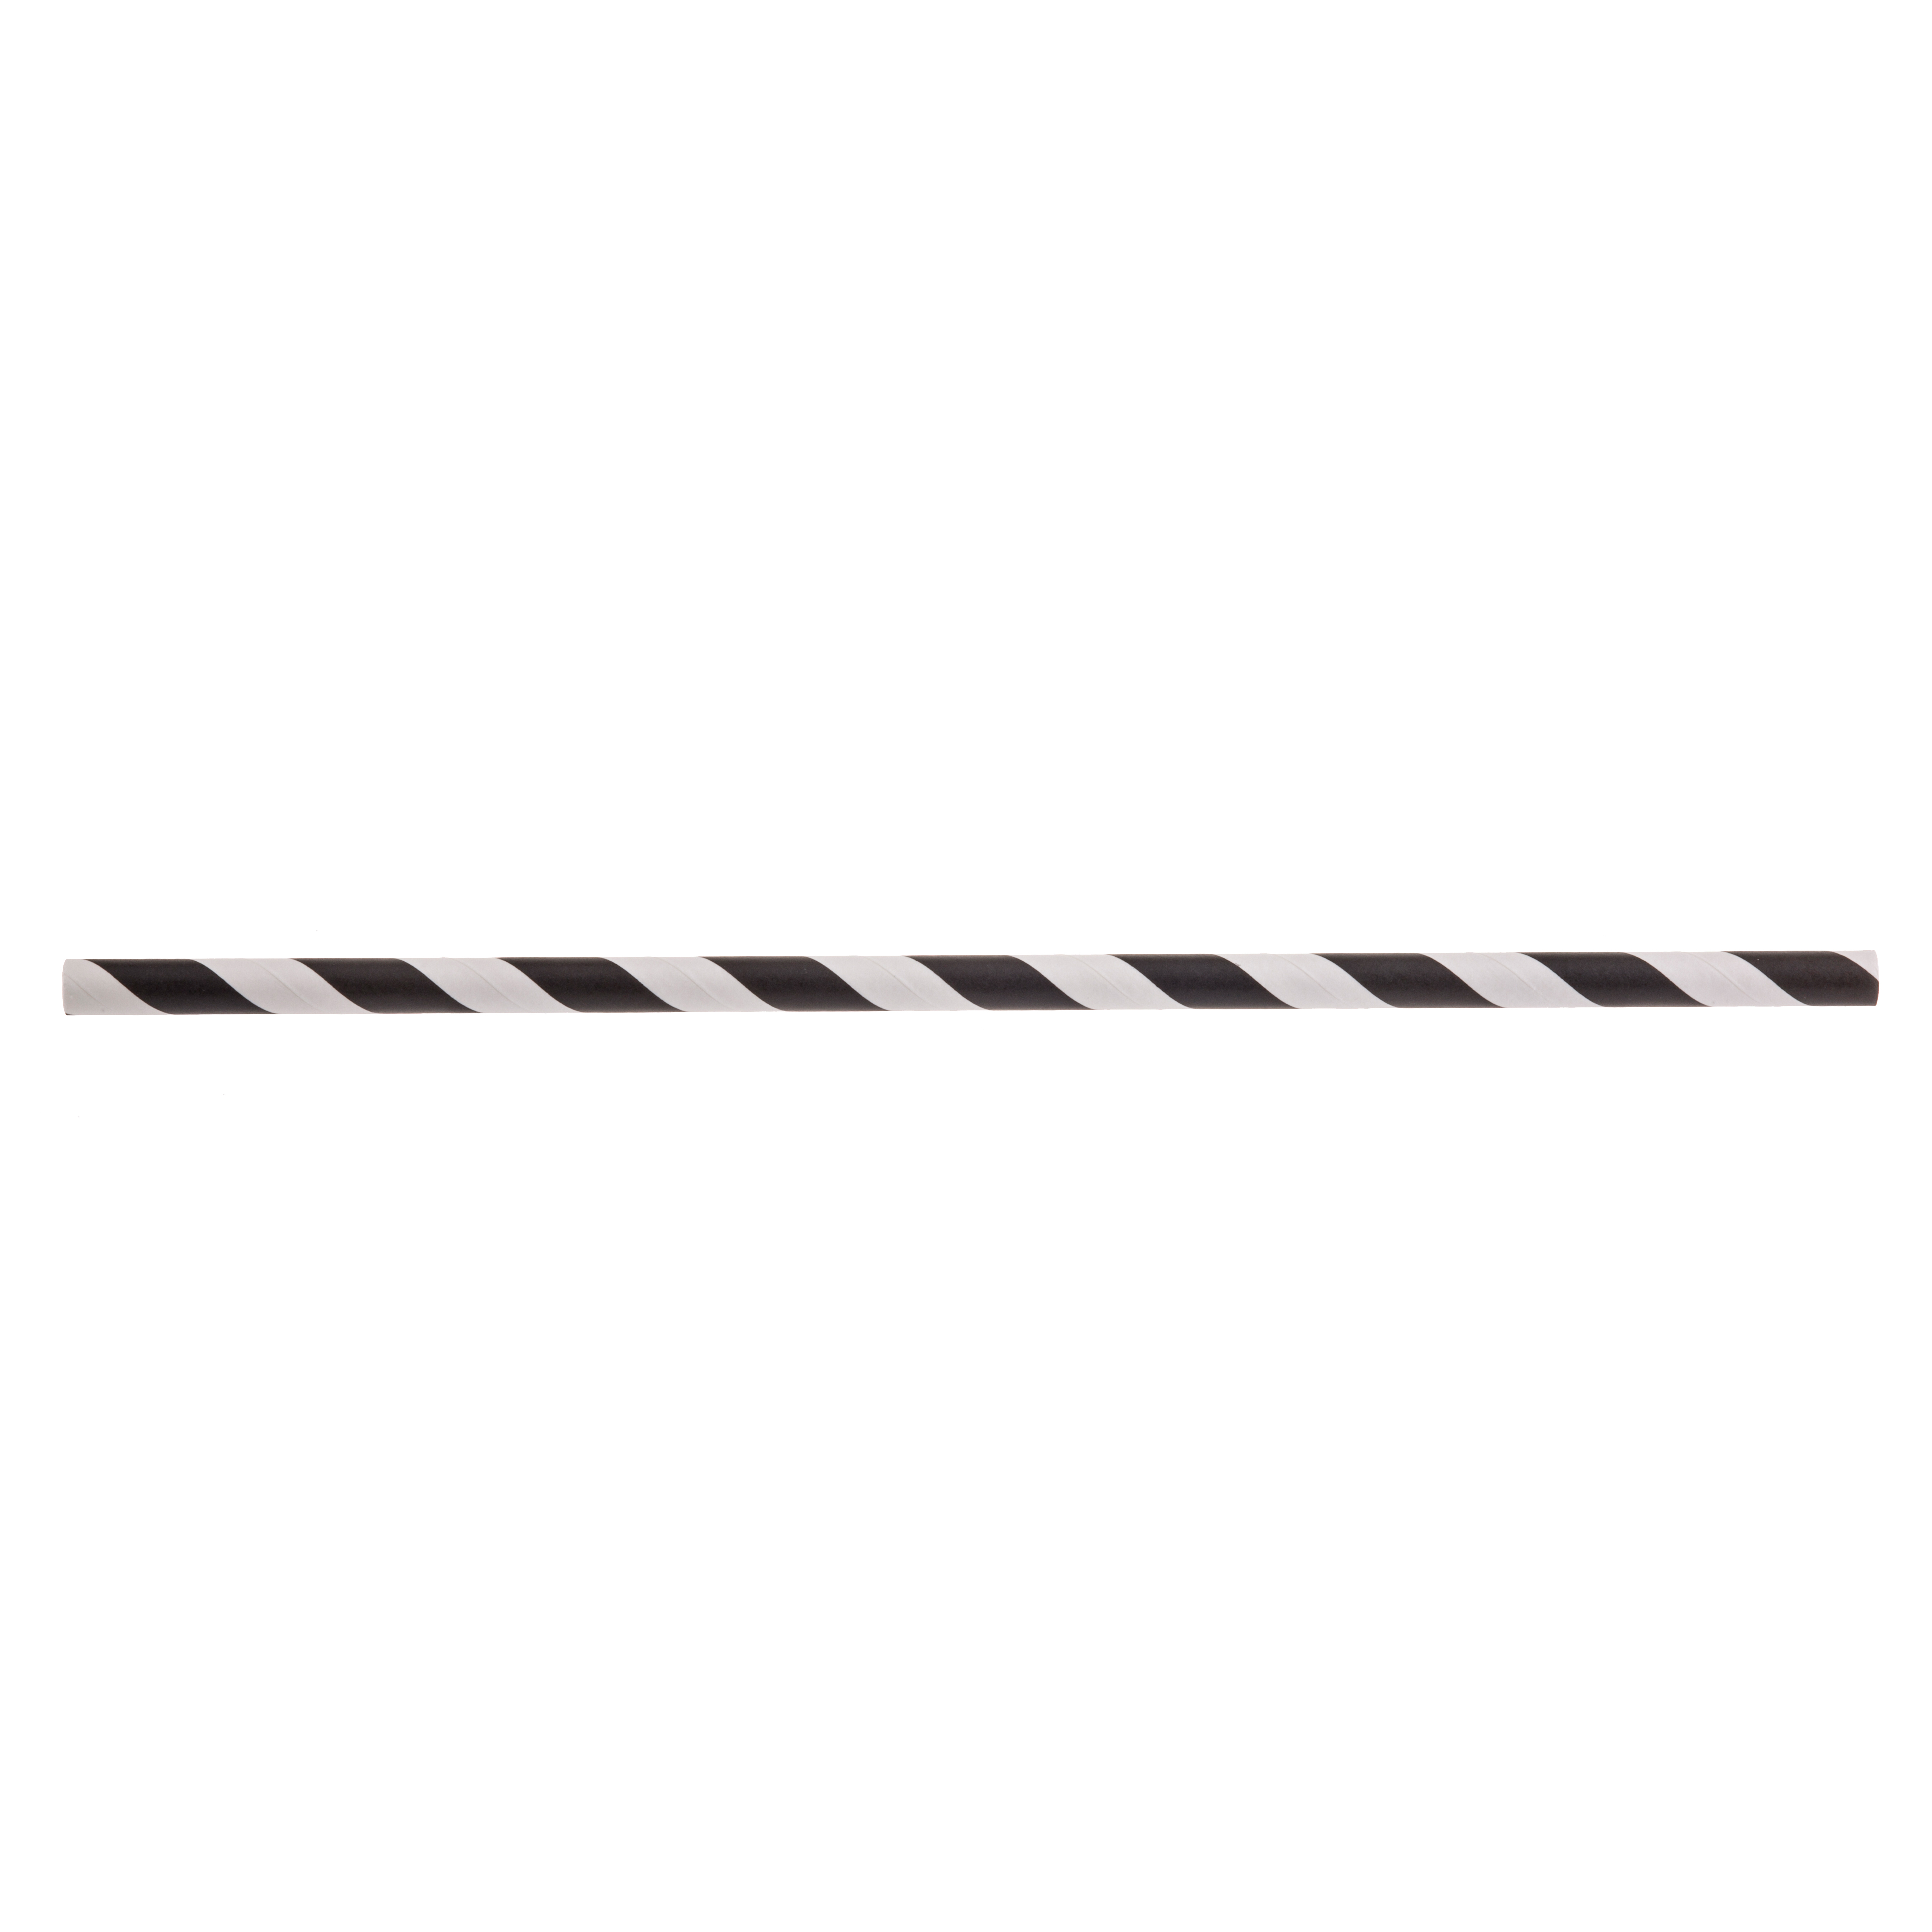 TableCraft Products 100114 straws